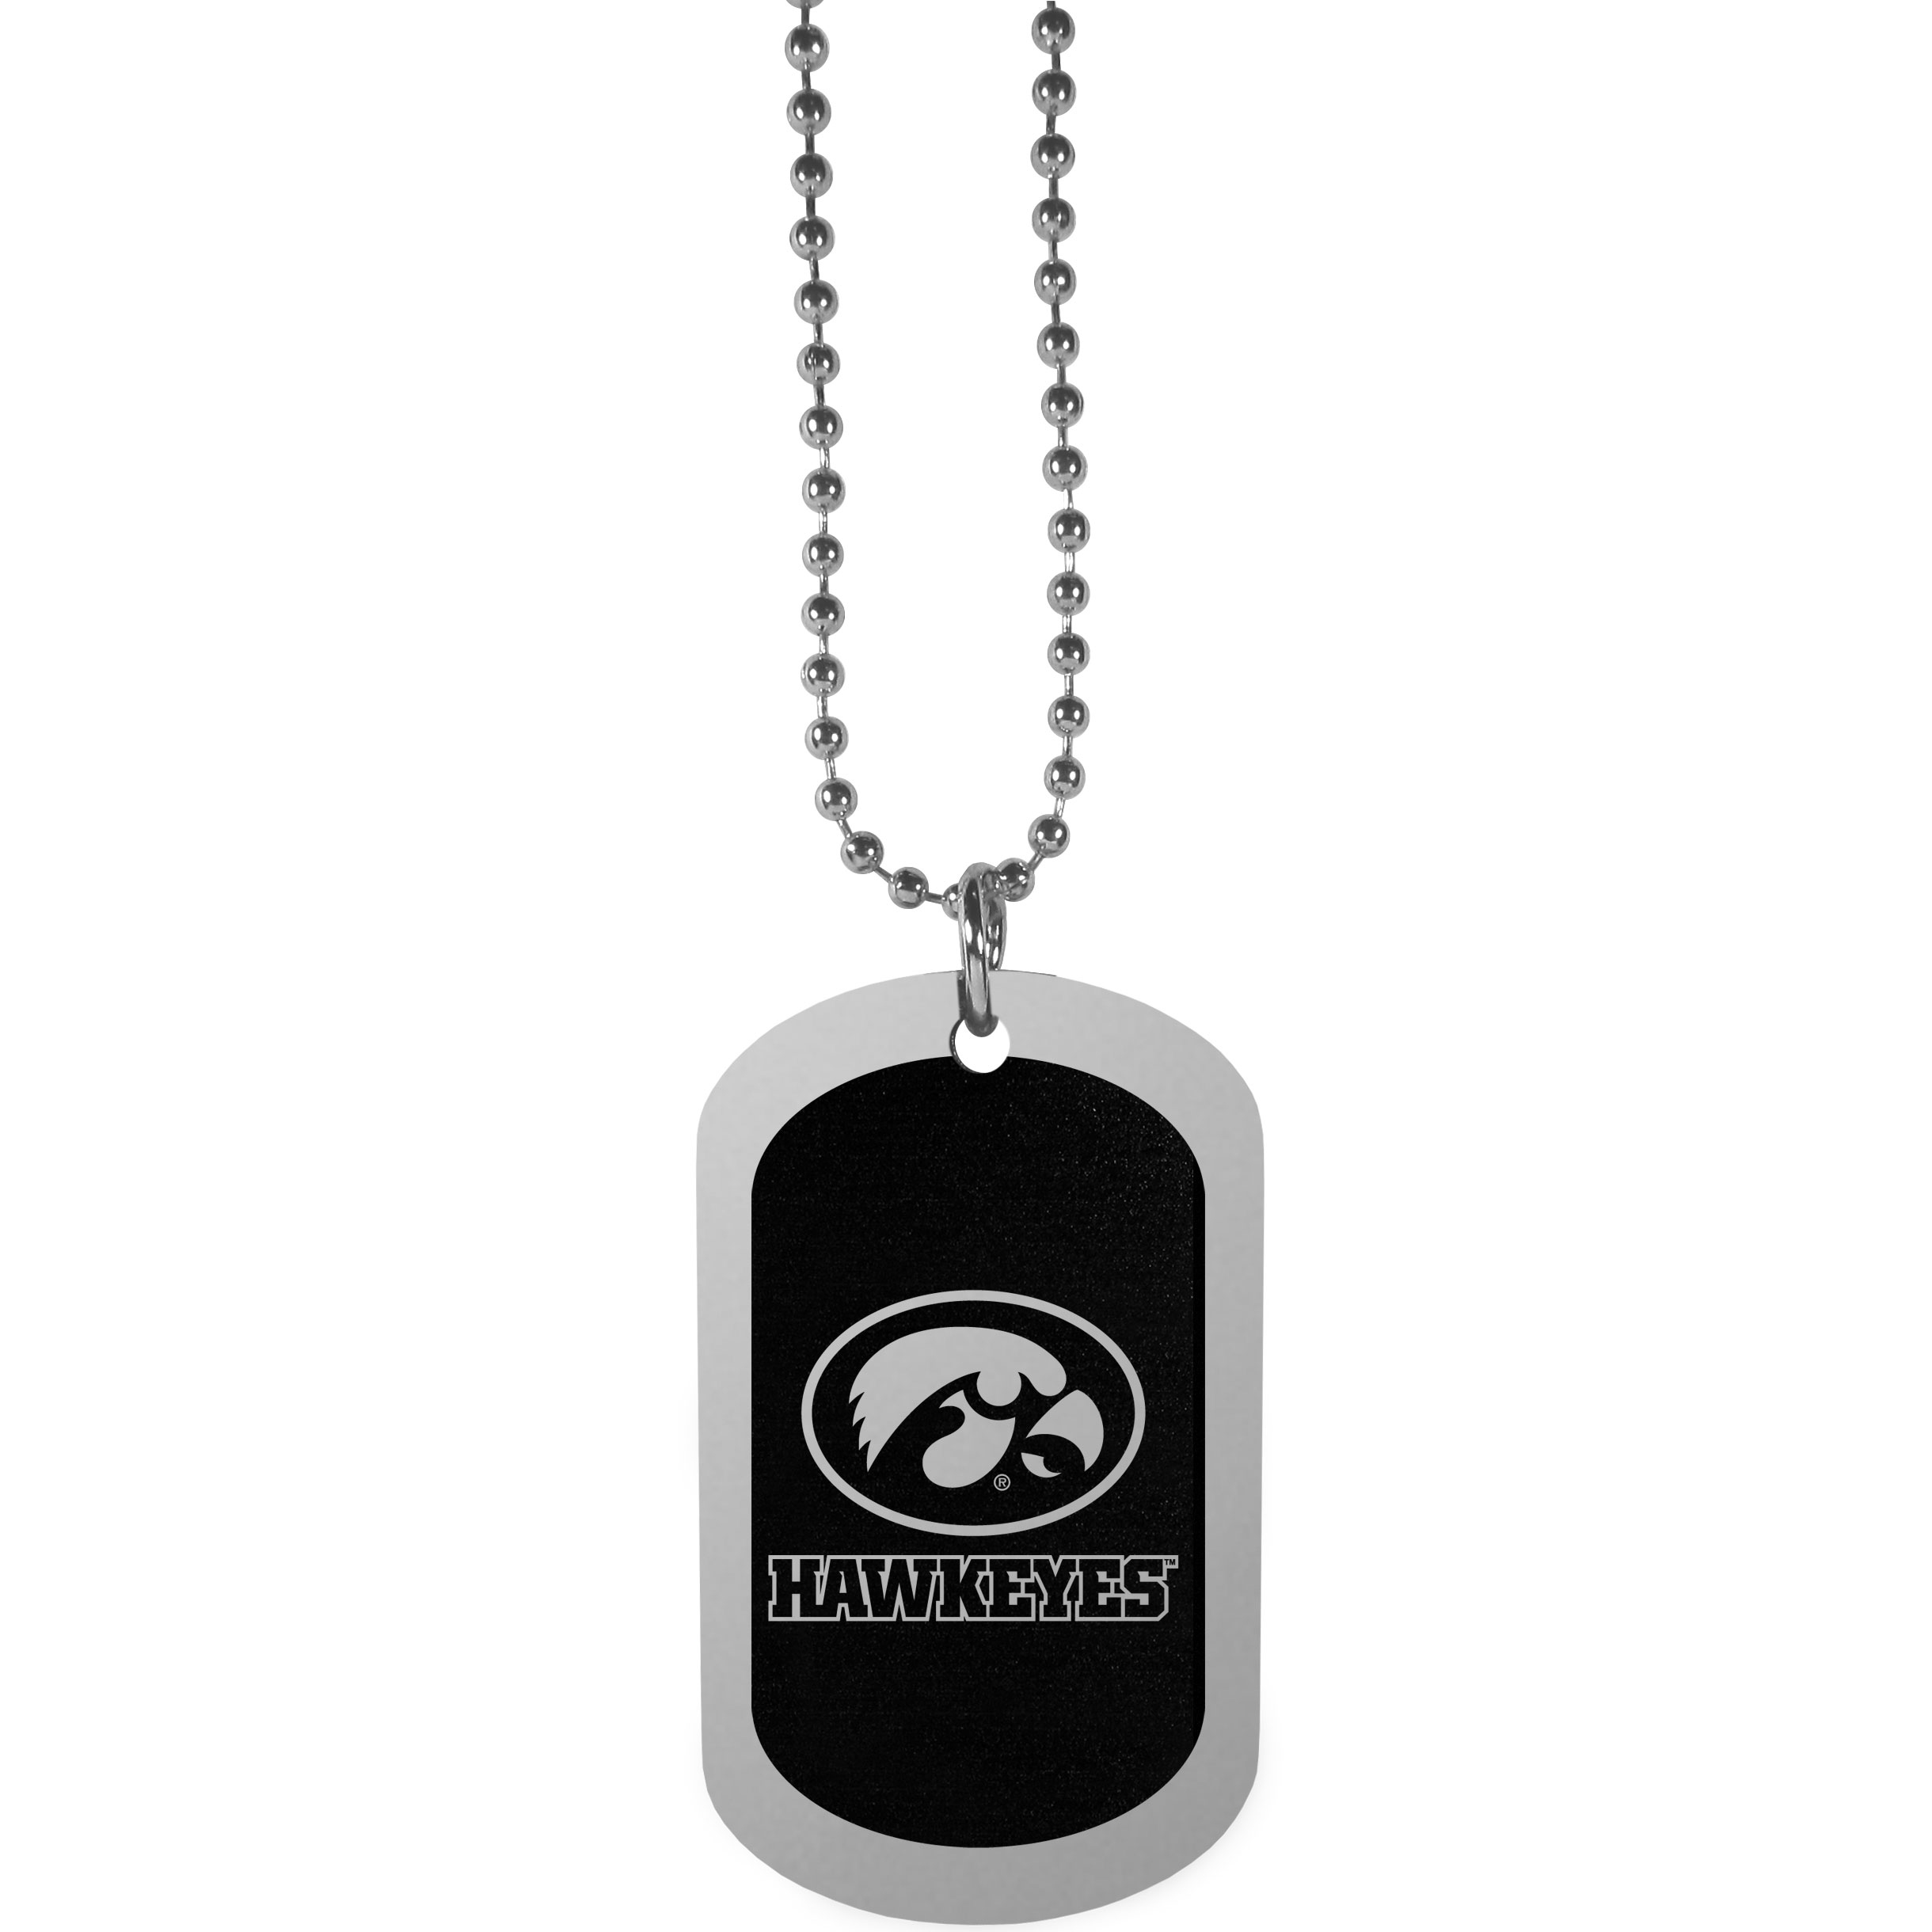 Iowa Hawkeyes Chrome Tag Necklace - Dog tag necklaces are a fashion statement that is here to stay. The sporty version of the classic tag features a black printed over a high polish tag to create a bold and sporty look. The tag comes on a 26 inch ball chain with a ball and joint clasp. Any Iowa Hawkeyes would be proud to wear this attractive fashion accessory.